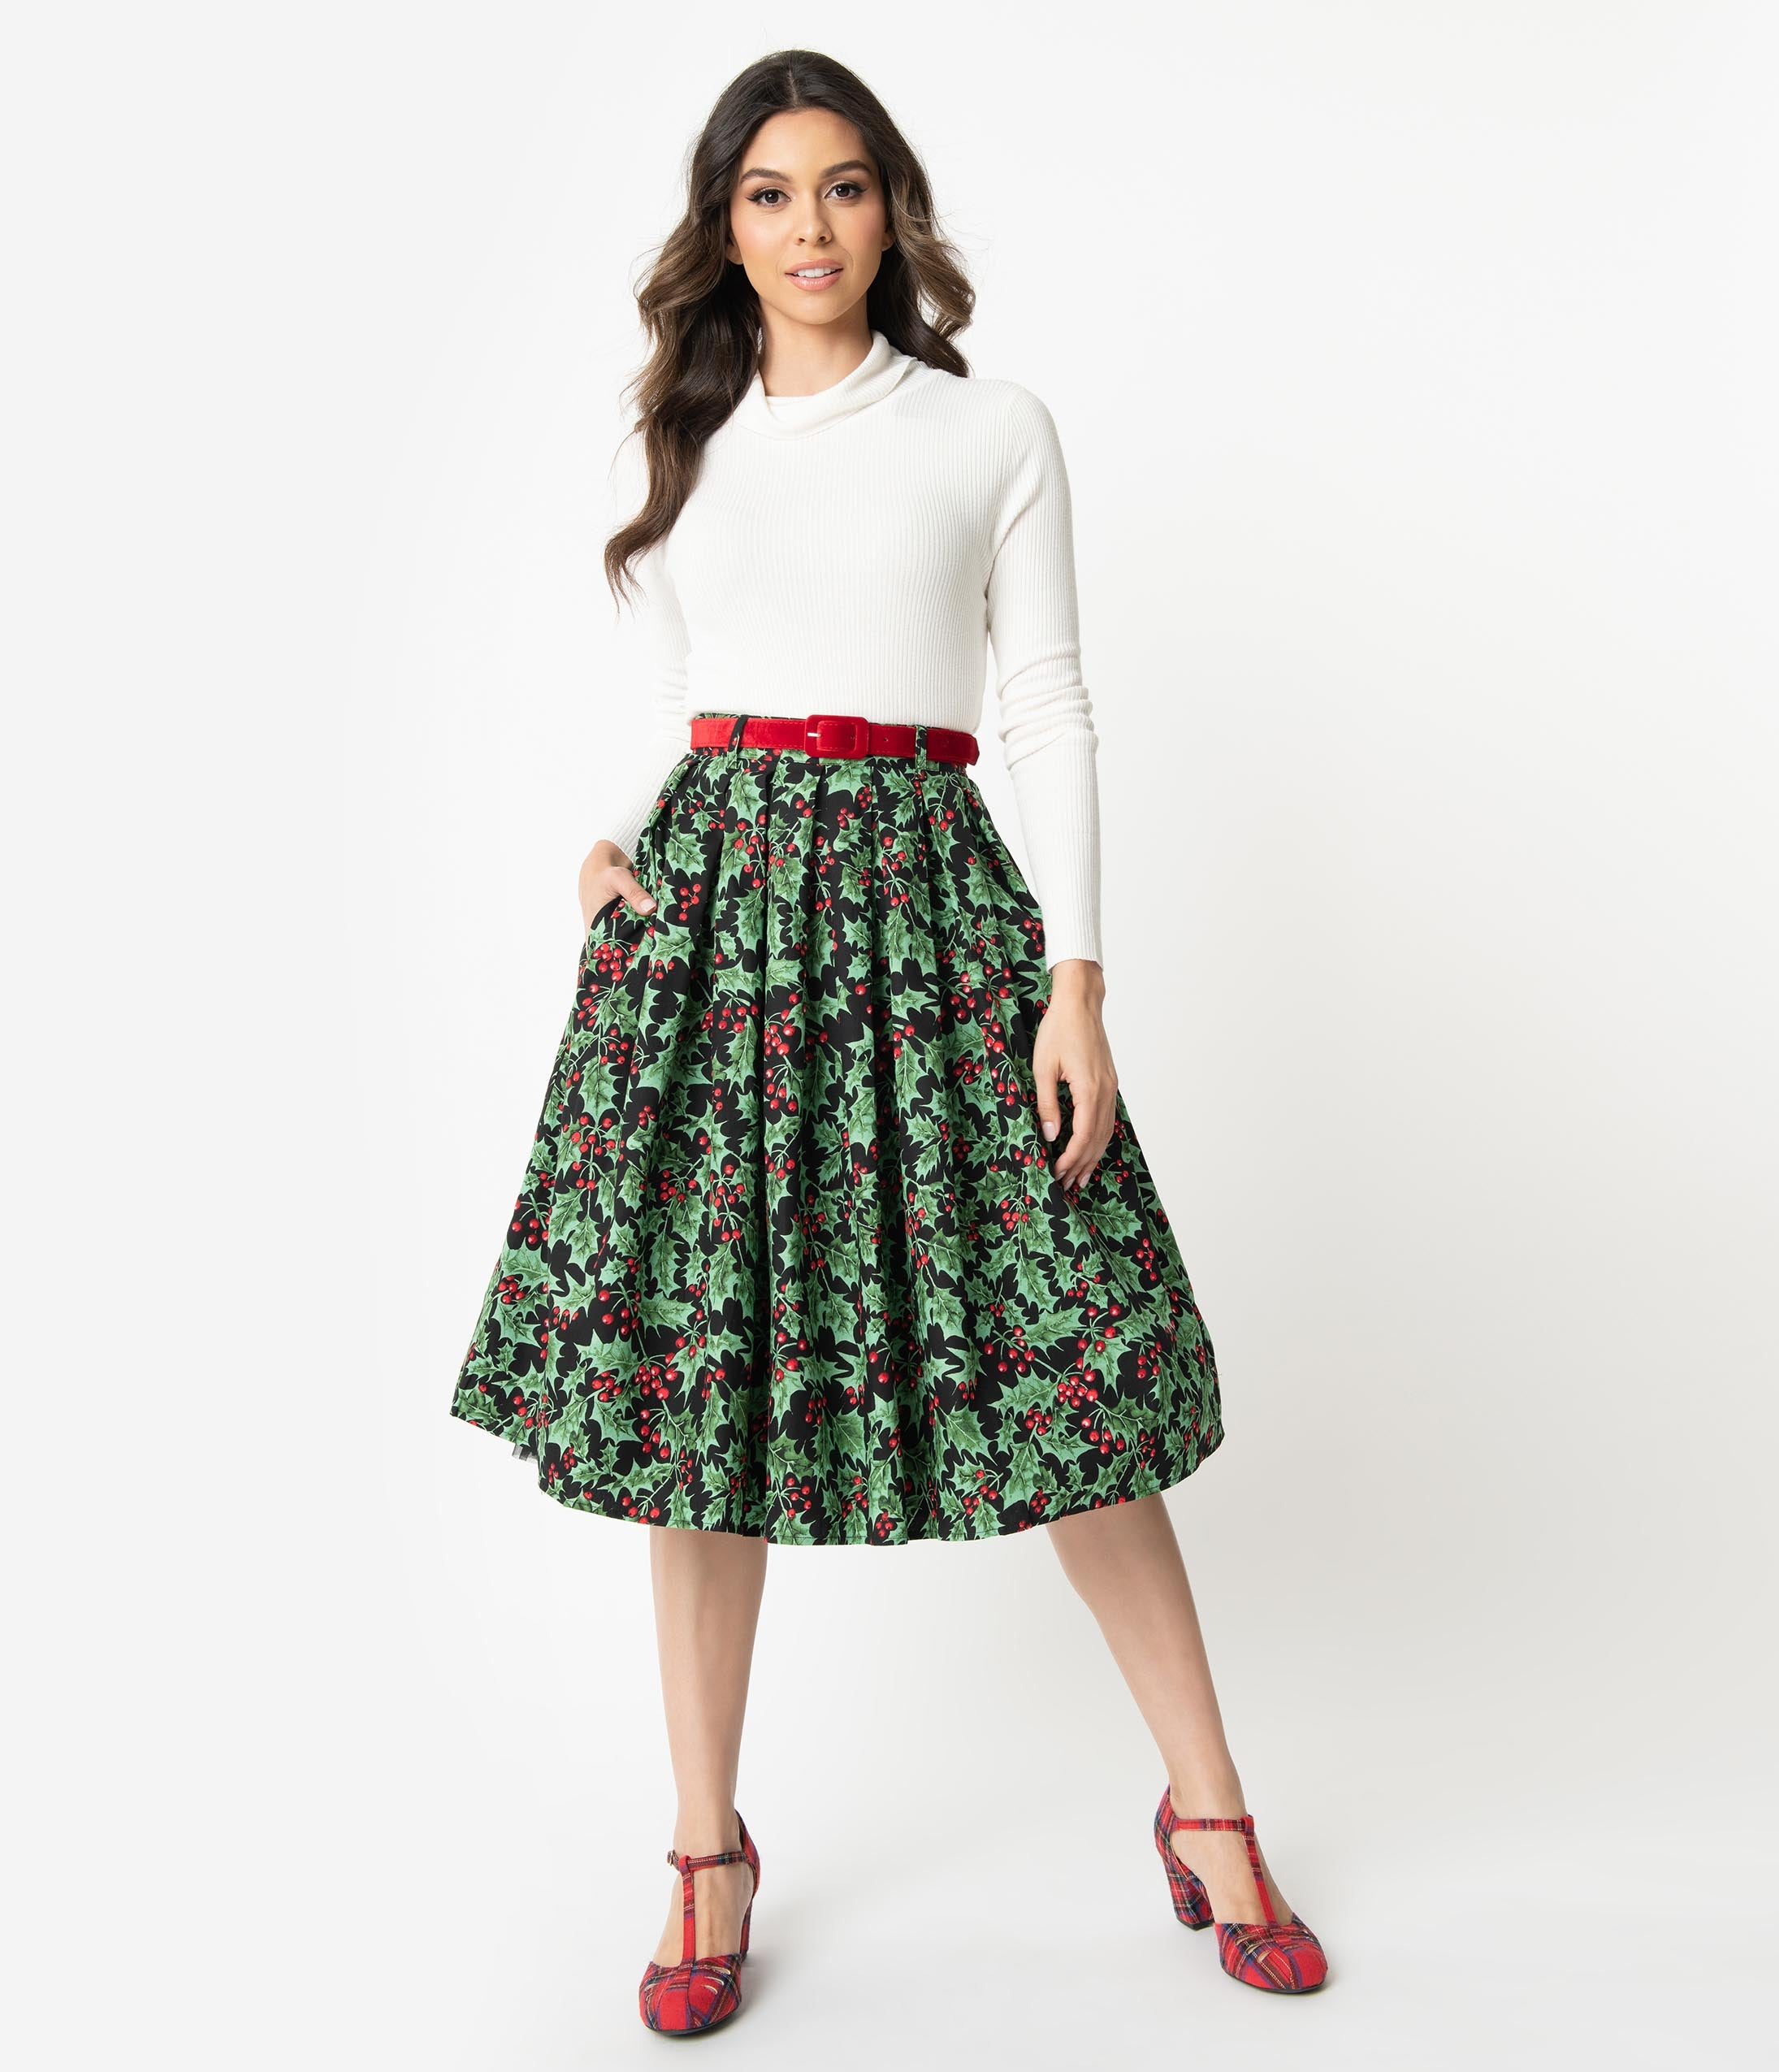 50s Skirt Styles | Poodle Skirts, Circle Skirts, Pencil Skirts 1950s Holly Berry Print Pleated Cotton Swing Skirt $62.00 AT vintagedancer.com